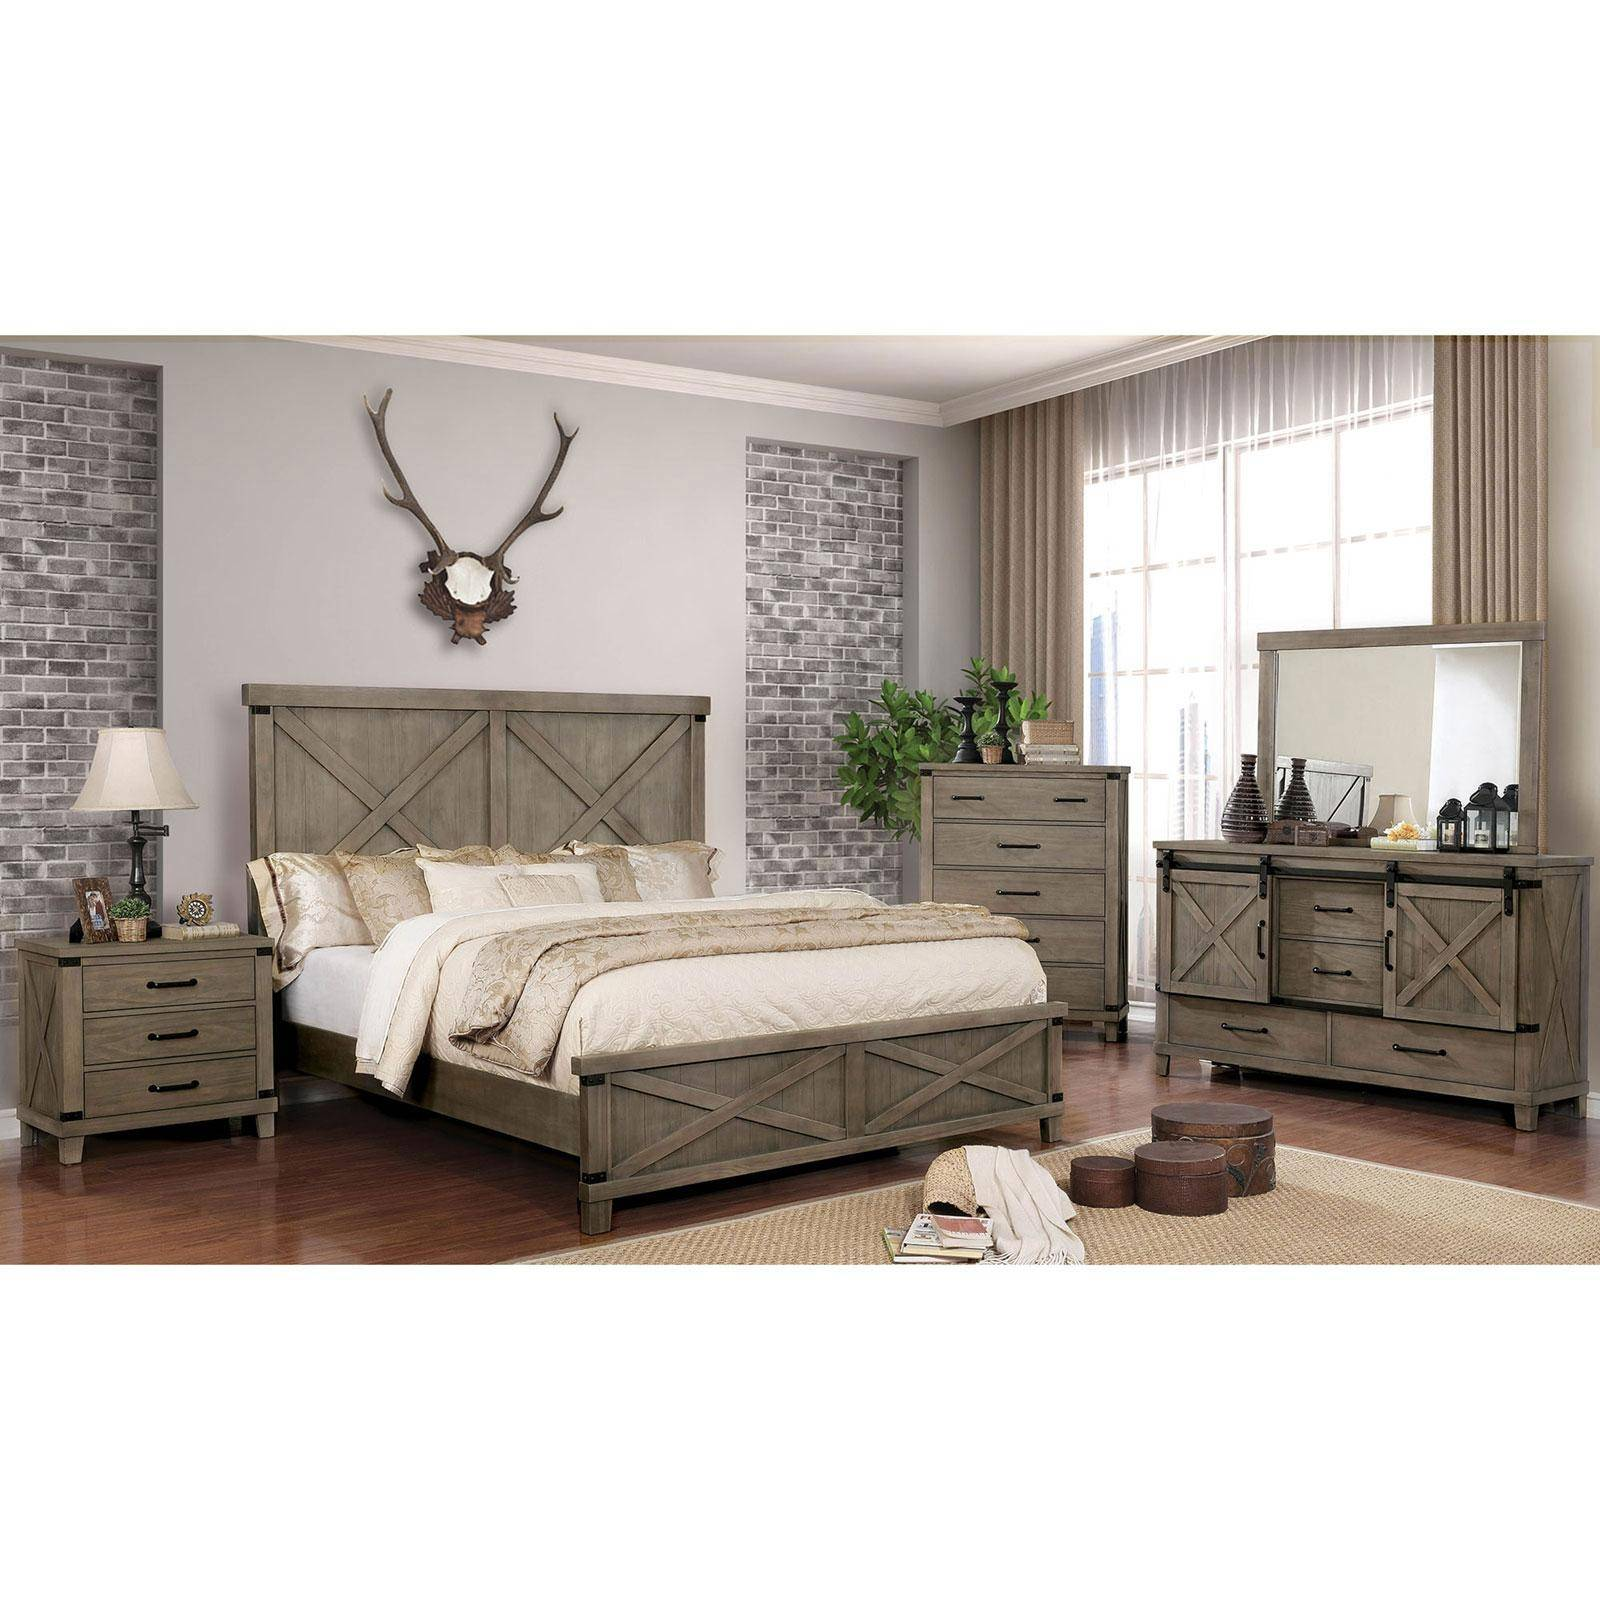 Buy Furniture Of America Bianca California King Panel Bedroom Set 4 Pcs In Gray Matte Lacquer Online